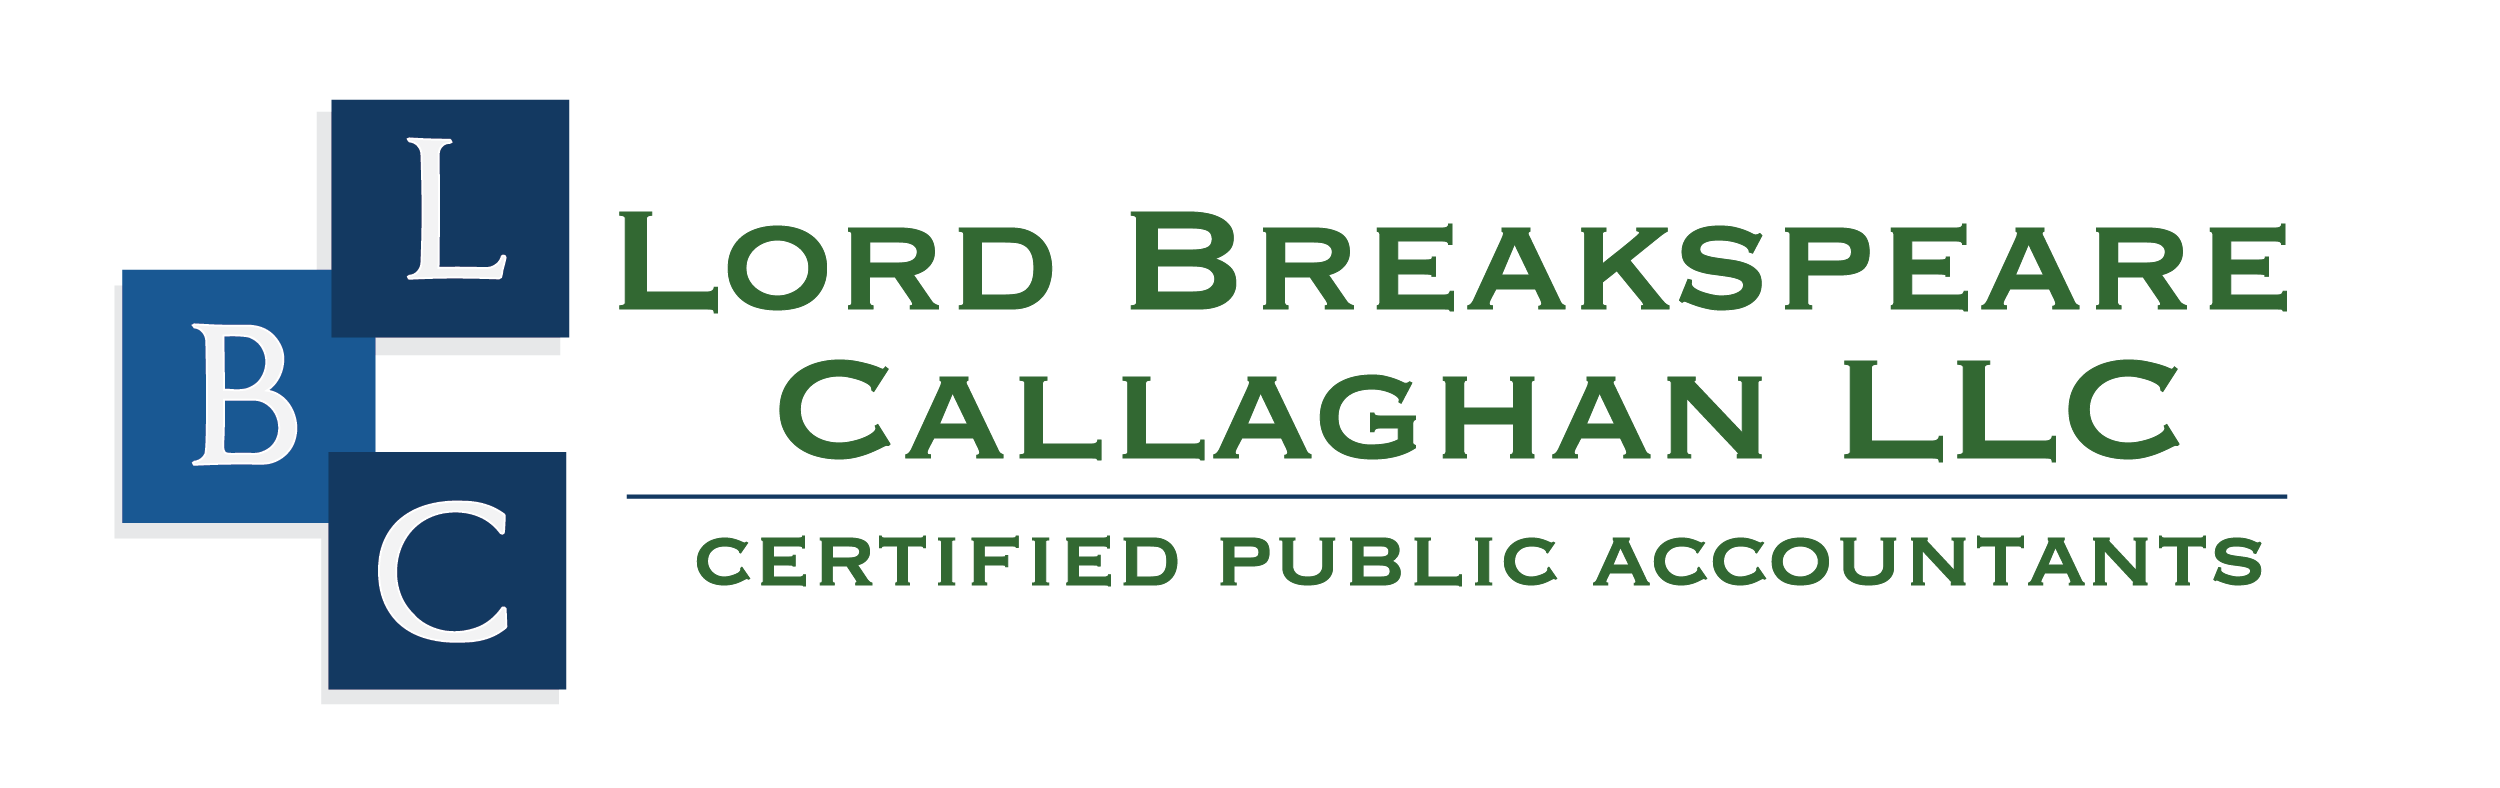 Lord Breakspeare Callaghan LLC, a Doral Chamber of Commerce member.